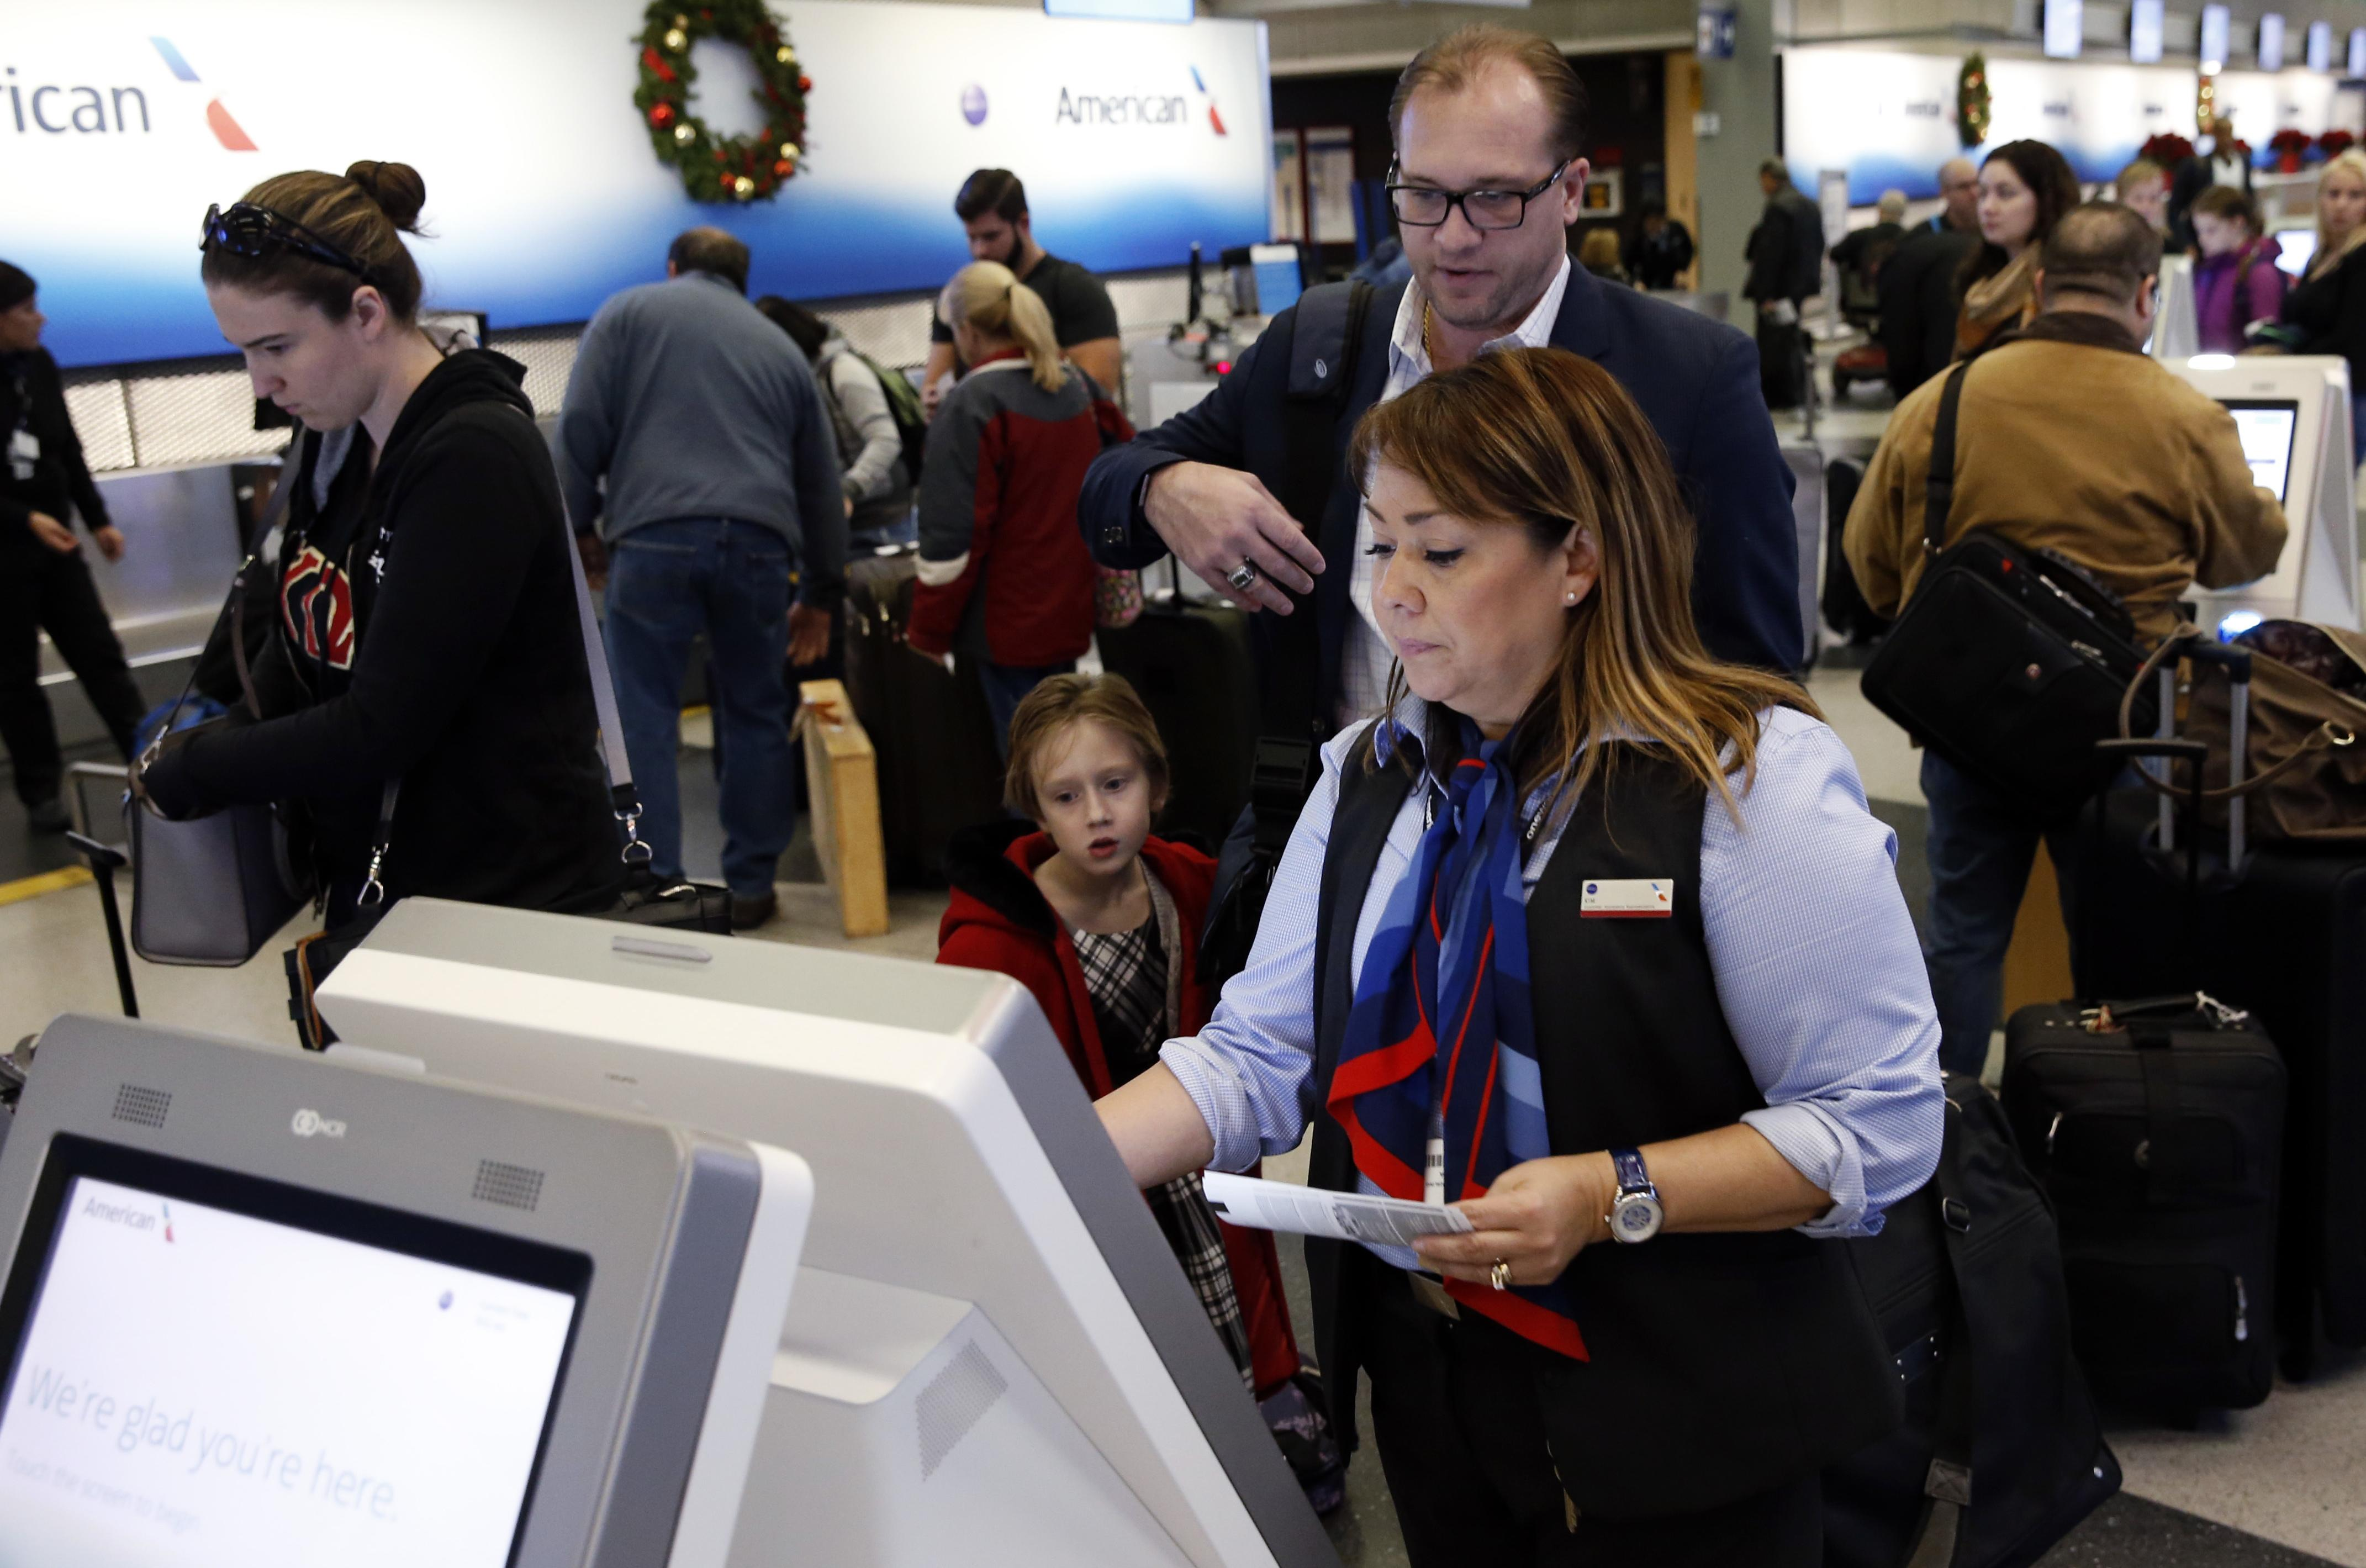 Airlines Swim In Cash But Leave Airport Workers High And